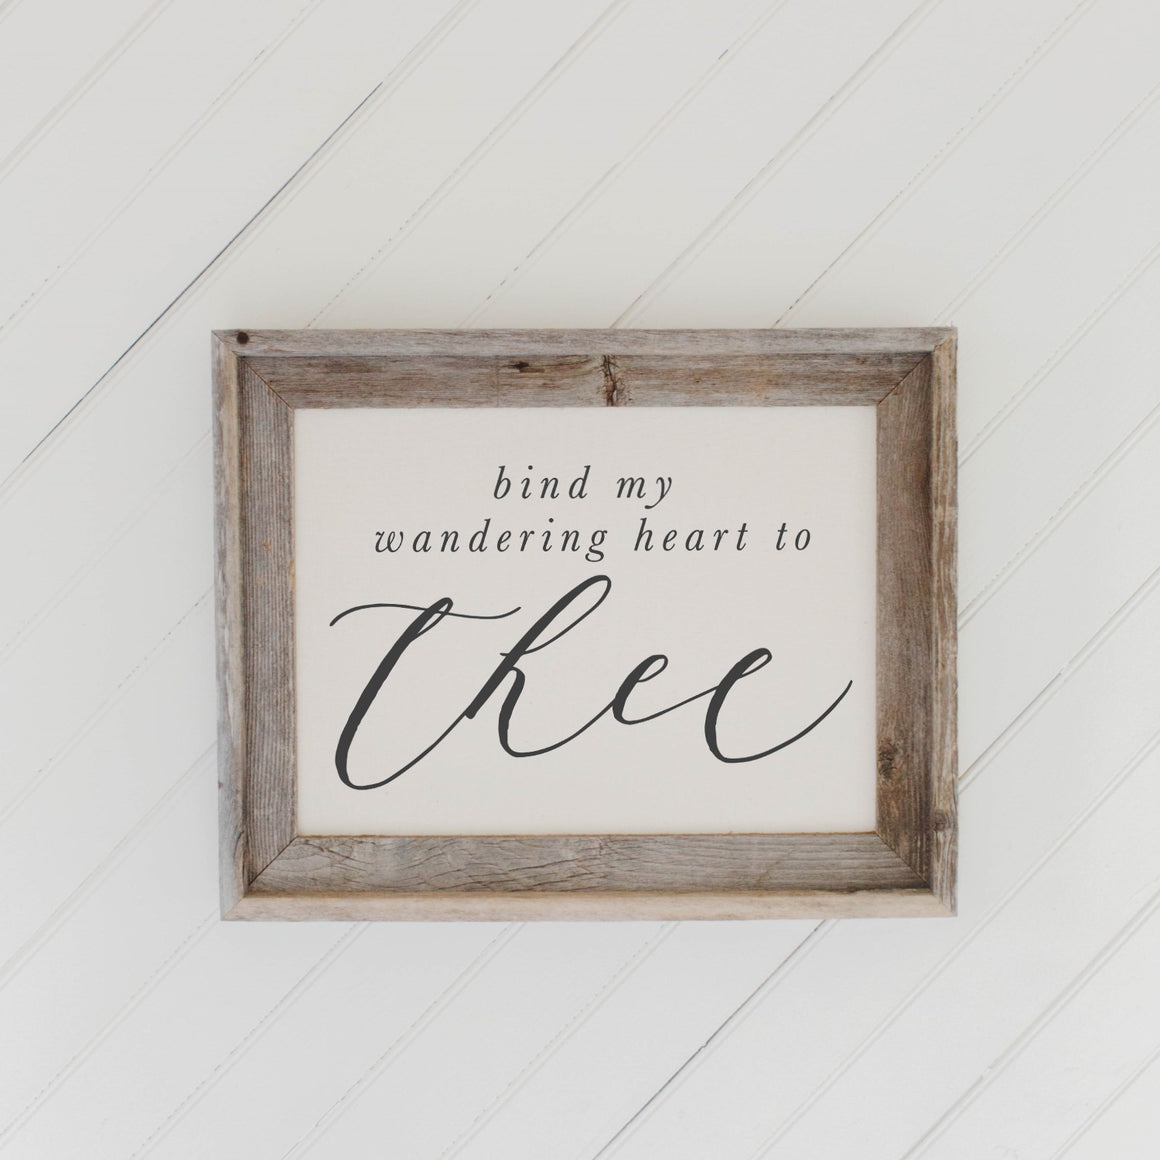 Bind My Wandering Heart To Thee Barn Wood Framed Print